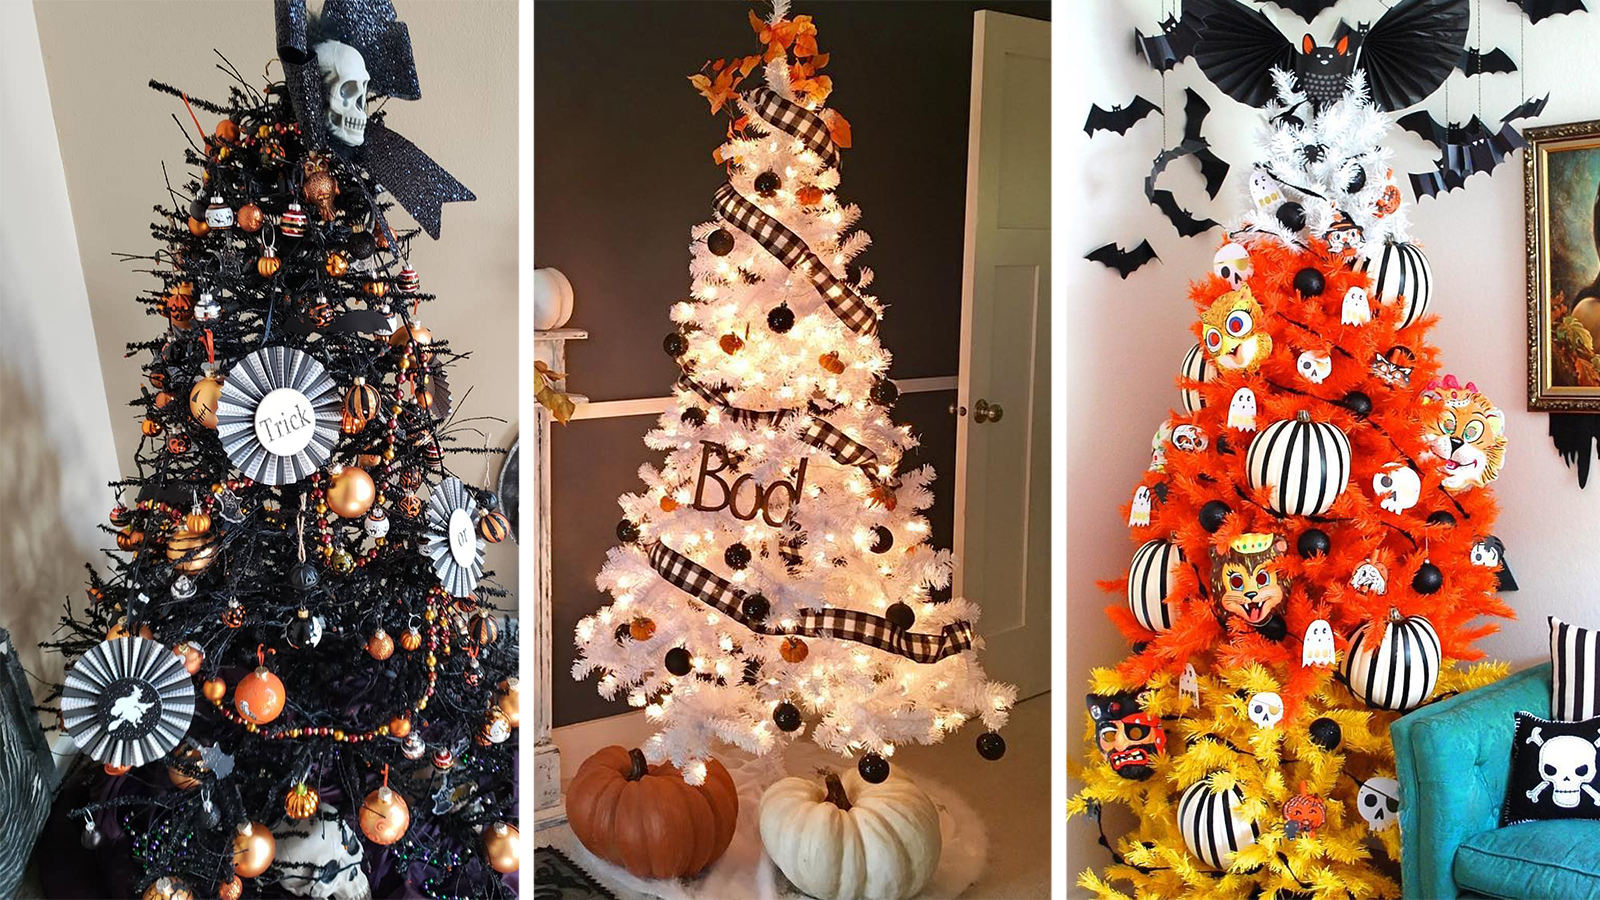 Halloween Trees Are a Real Thing, and People Are Already Putting Them Up